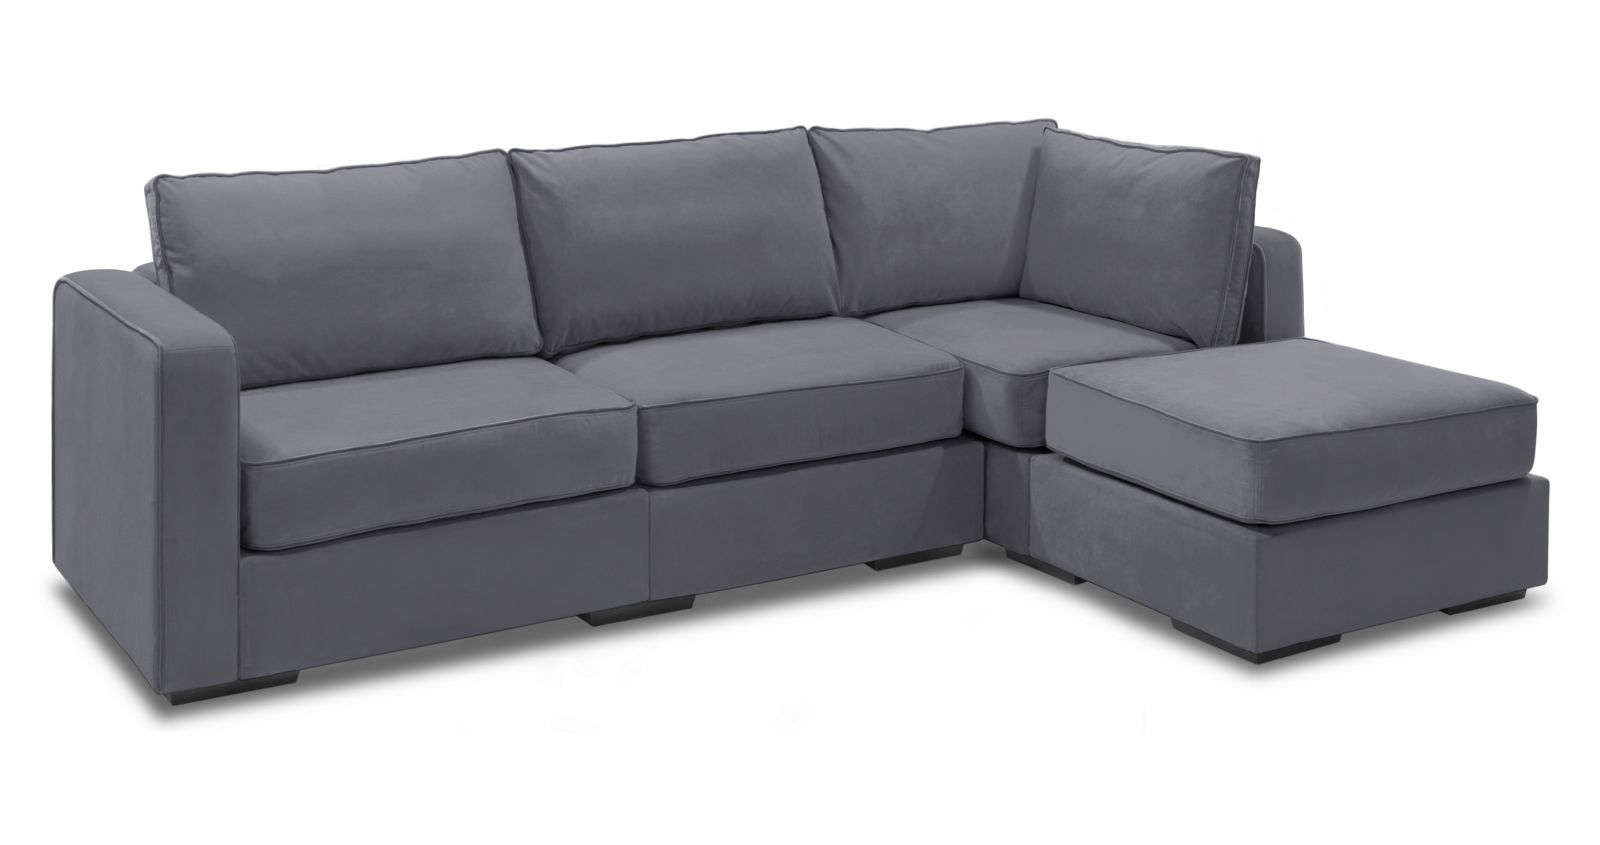 Chaise Sectional Couch Seats Sides Lovesac Main Pdp Locks Dollar Pertaining To Norfolk Grey 6 Piece Sectionals With Raf Chaise (Image 4 of 25)